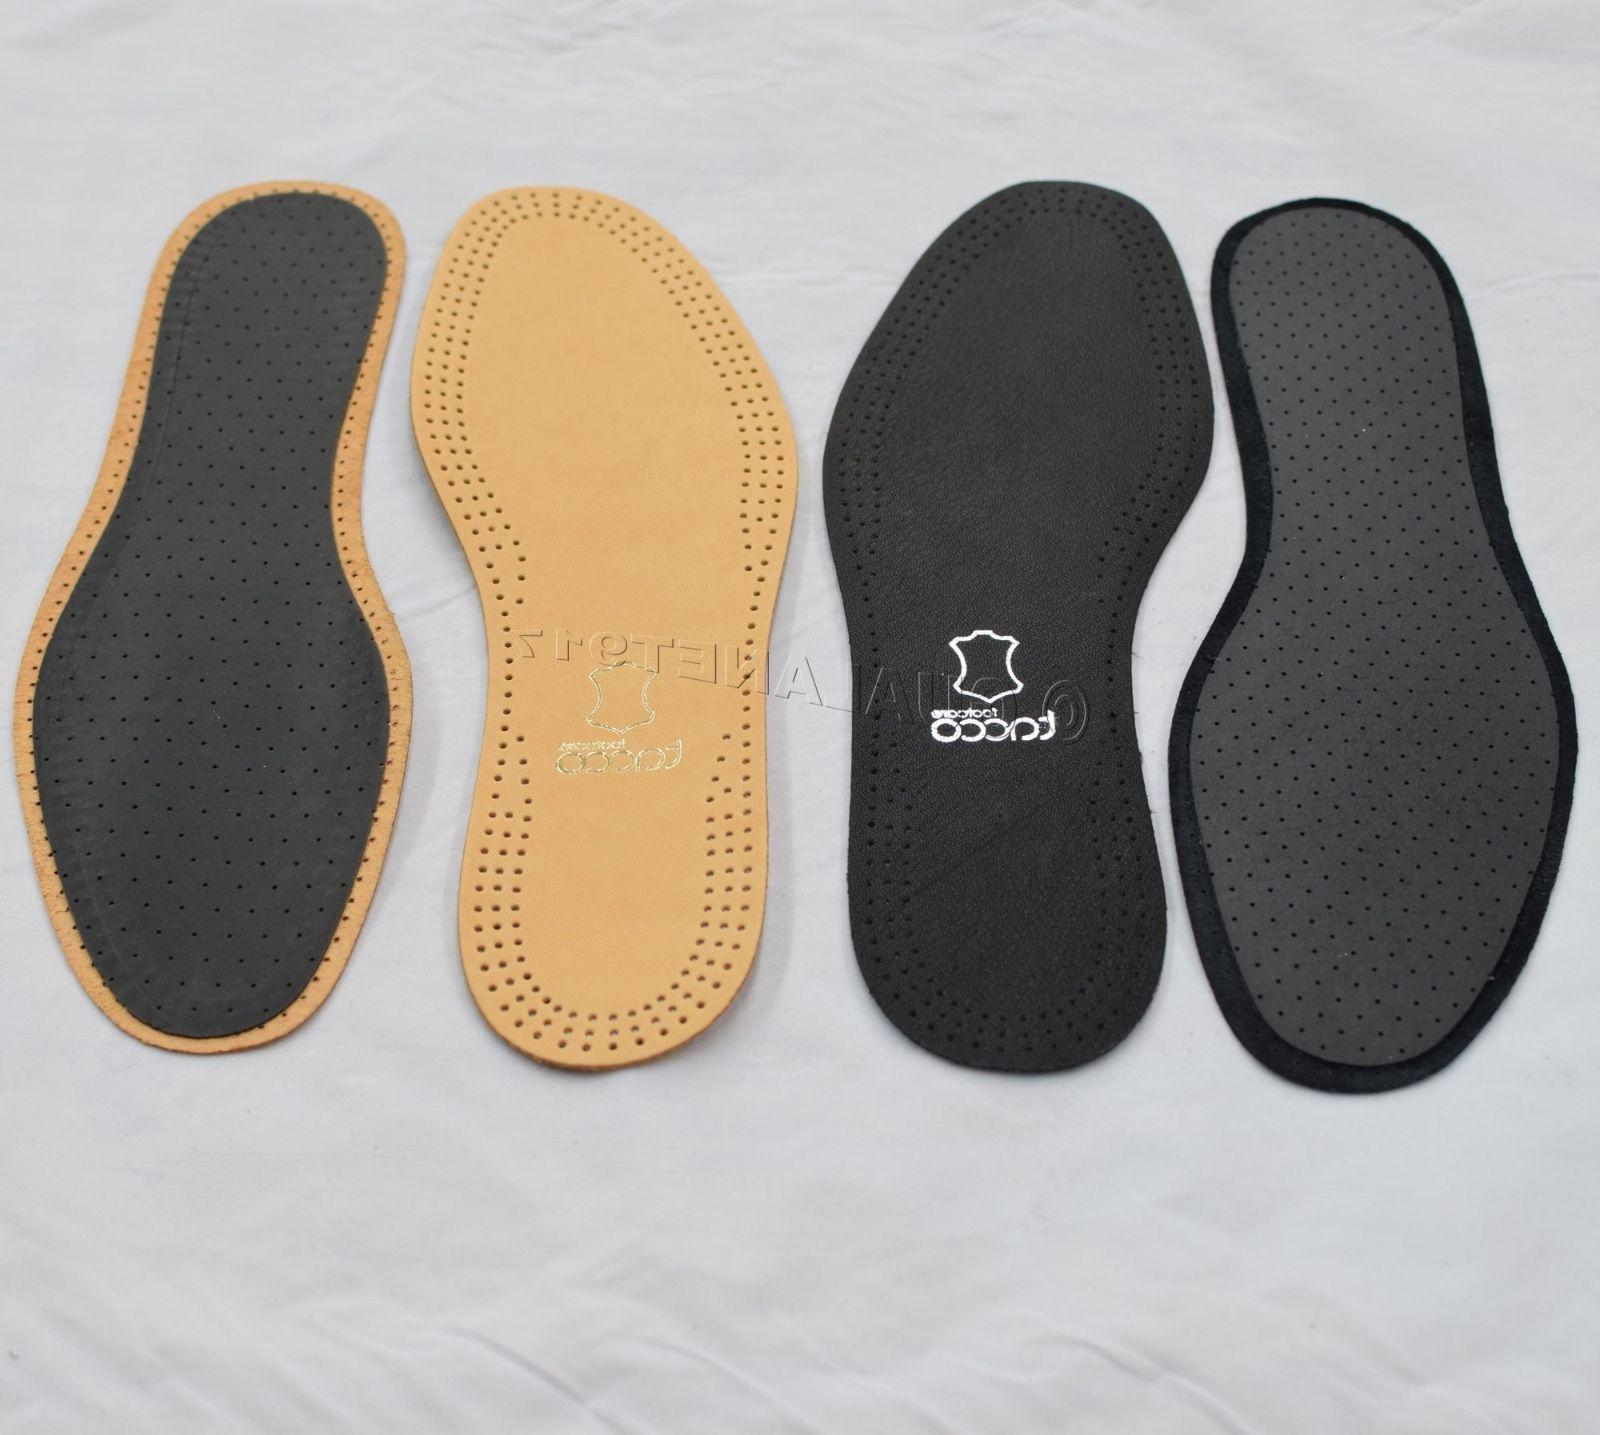 Taco Luxus Comfort Leather Insoles Tan Flat Shoe Inserts -